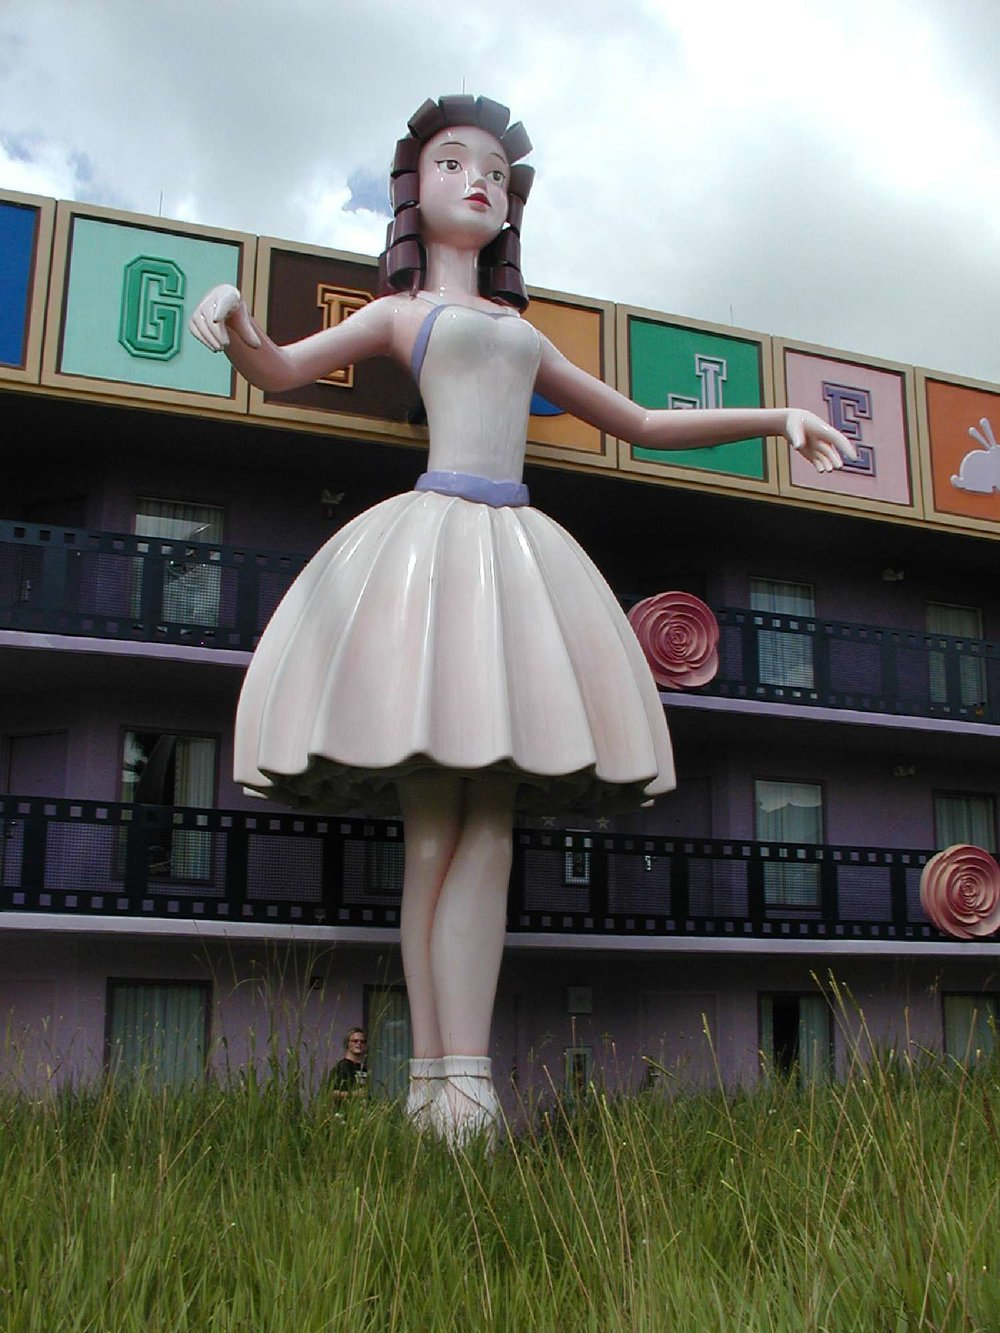 Ballerina on a Fantasia building at Disney's All-Star Movies Resort